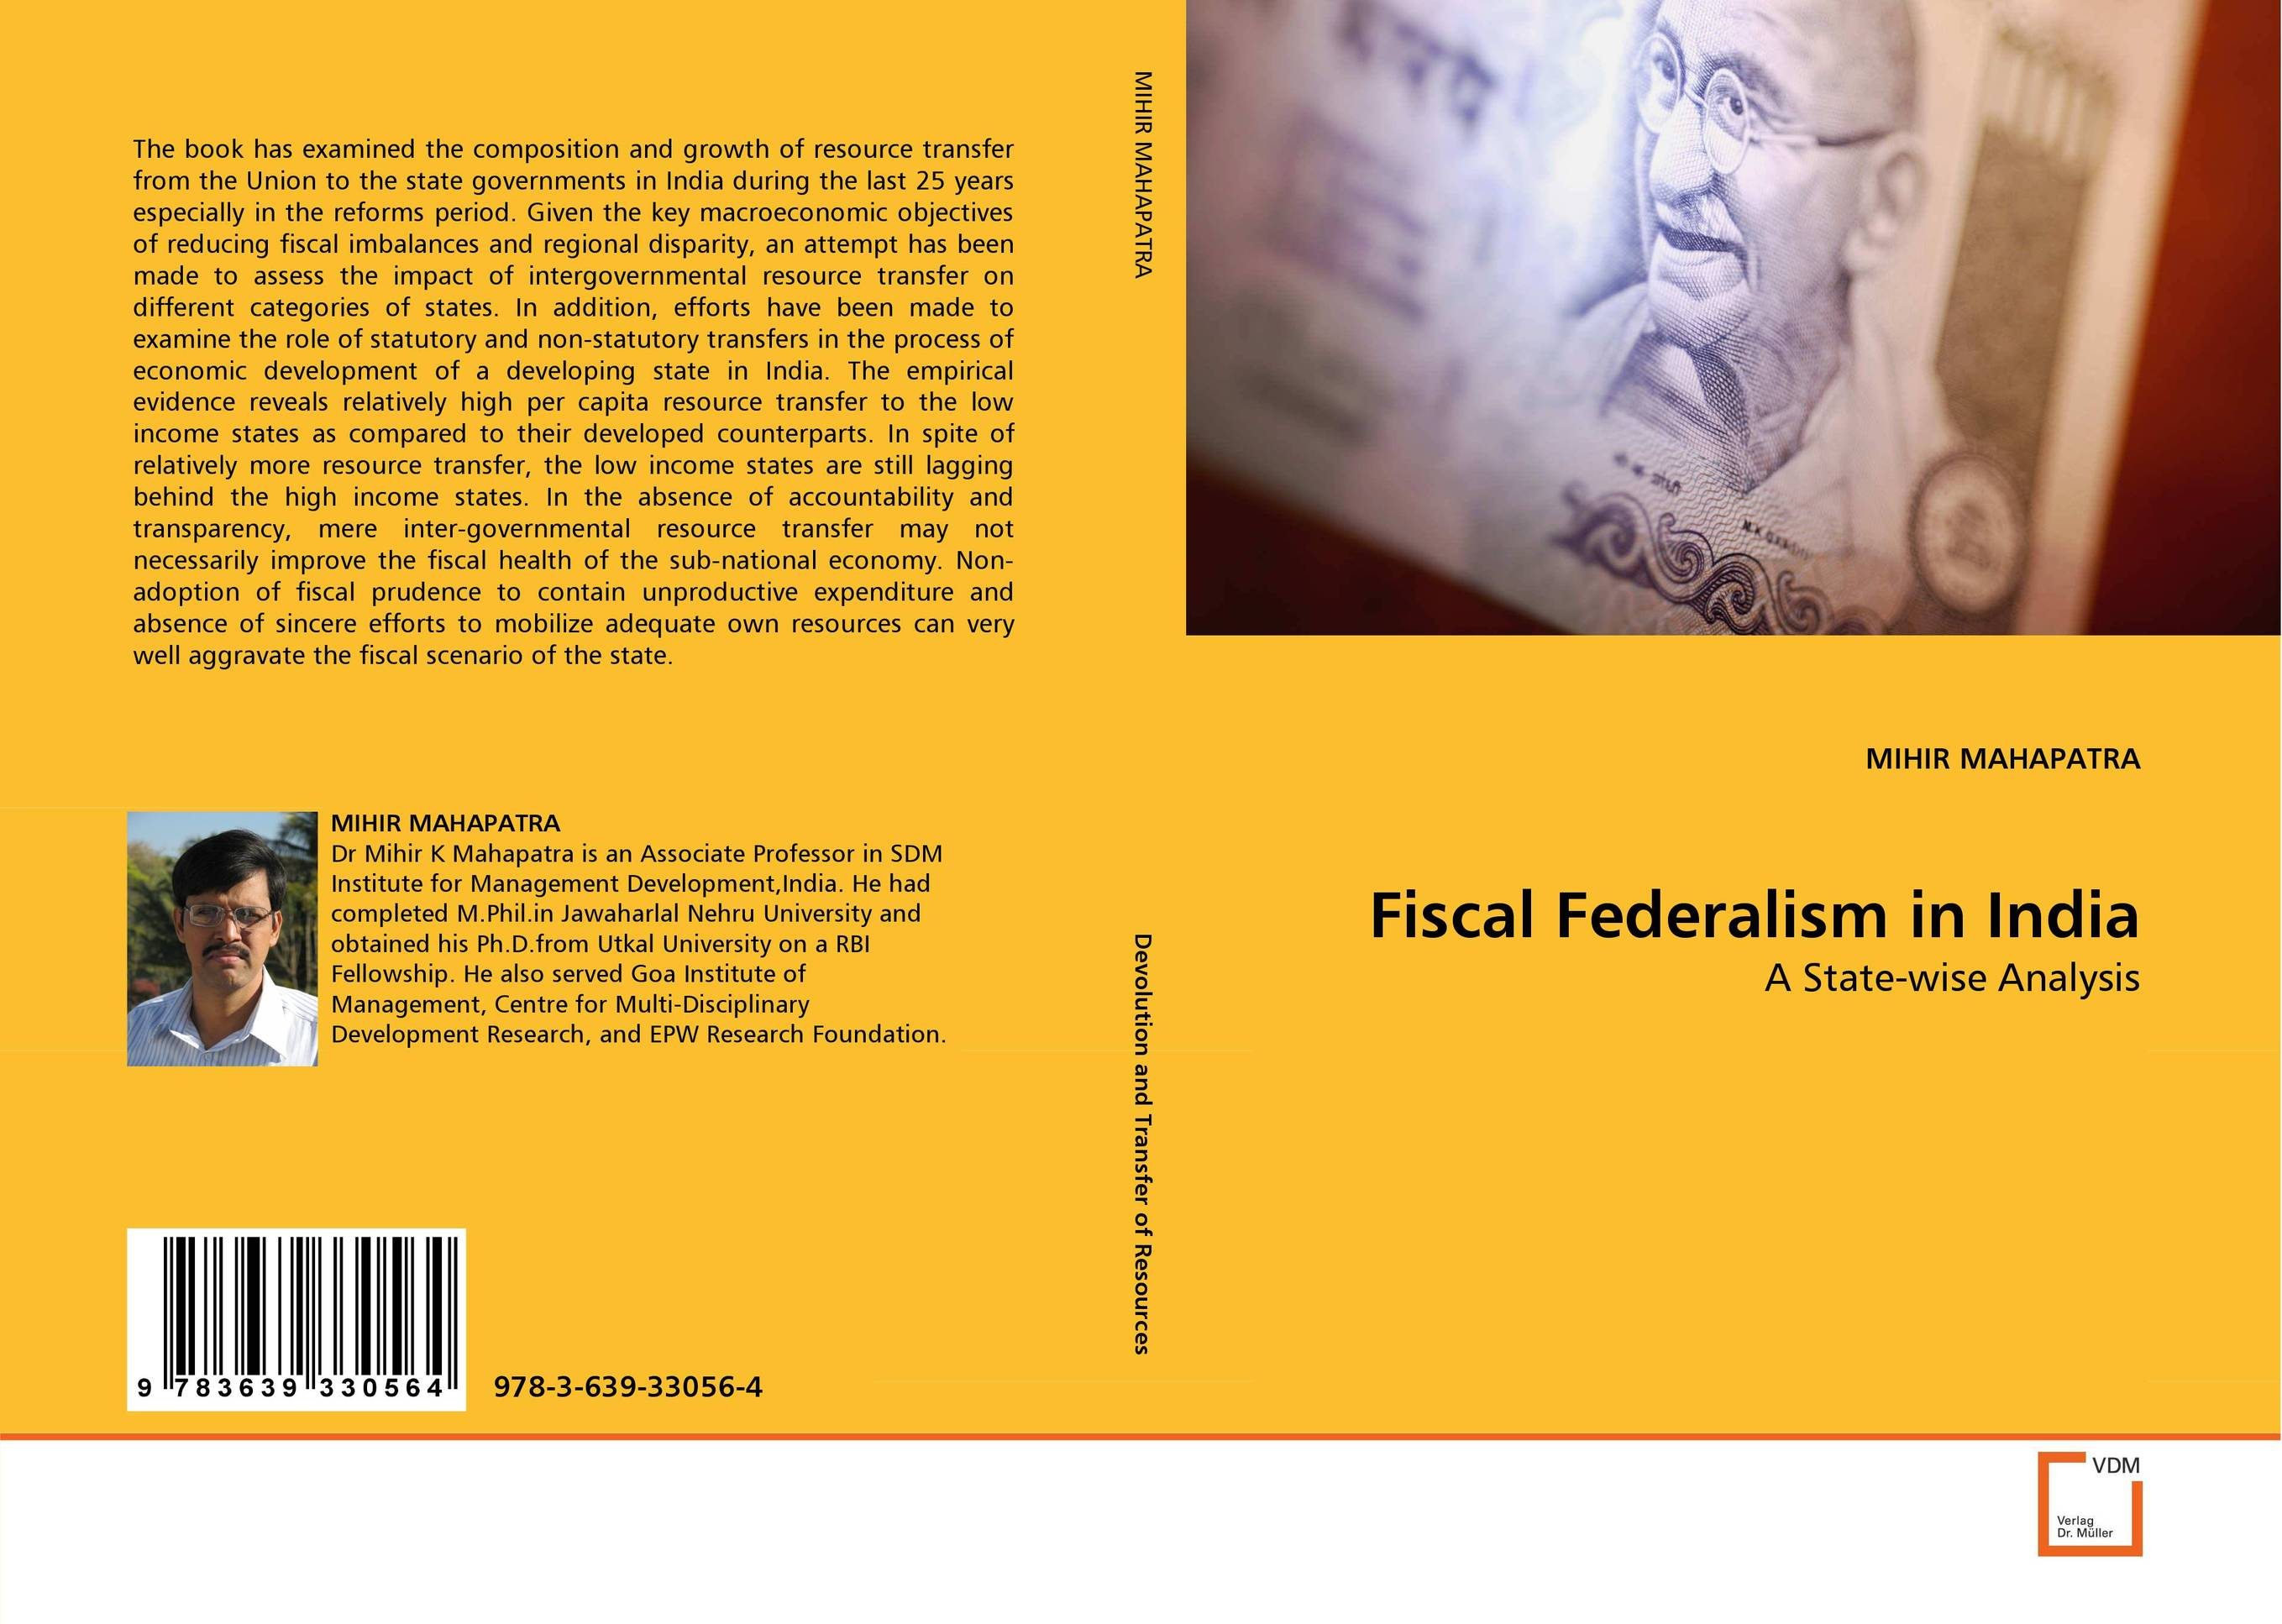 Fiscal Federalism in India impact of asset transfer program on landholdings health and income